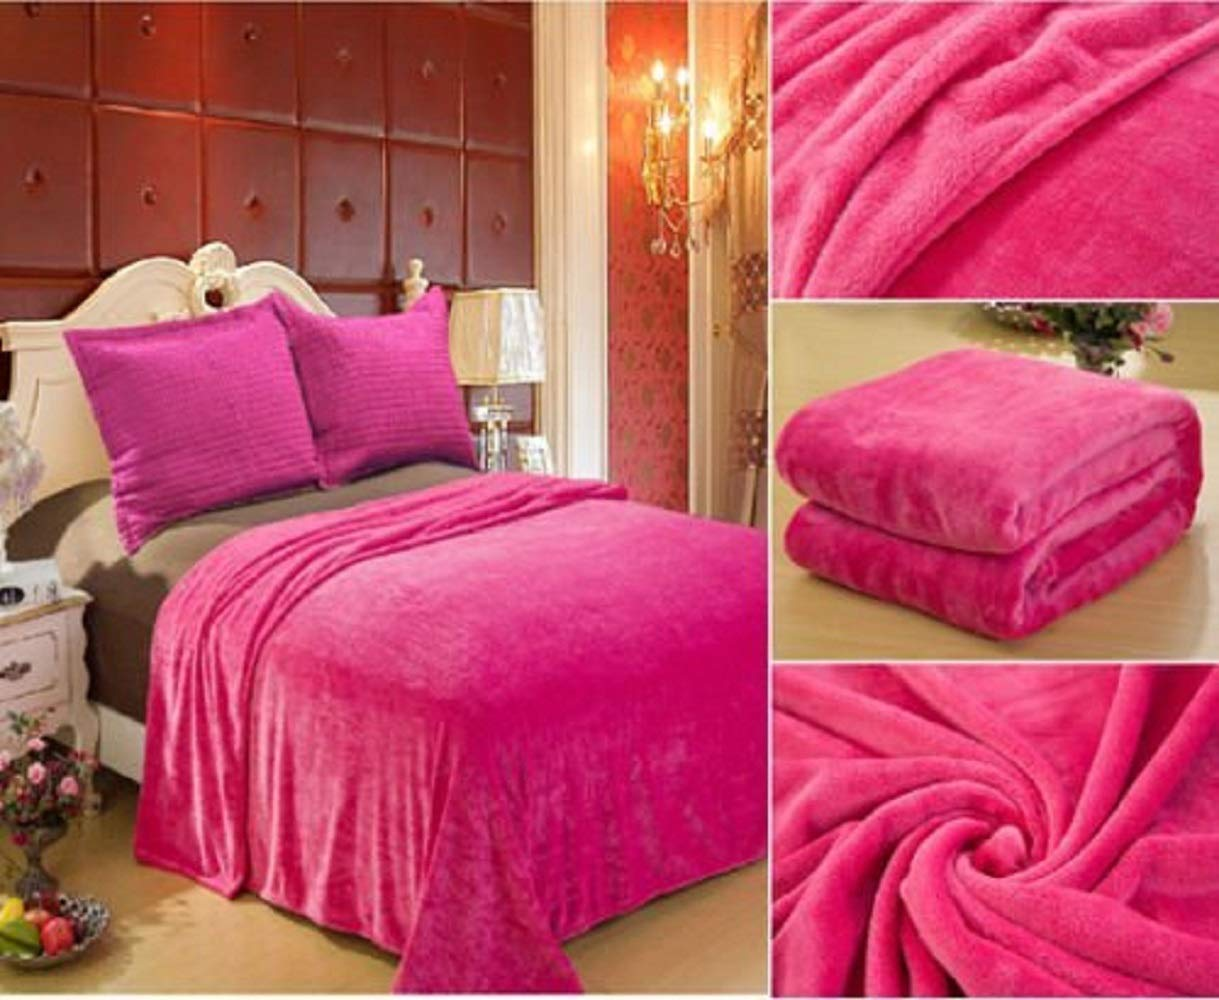 Home Must Haves Solid Hot Pink Blanket Bedding Throw Fleece Super Soft Warm, Full,